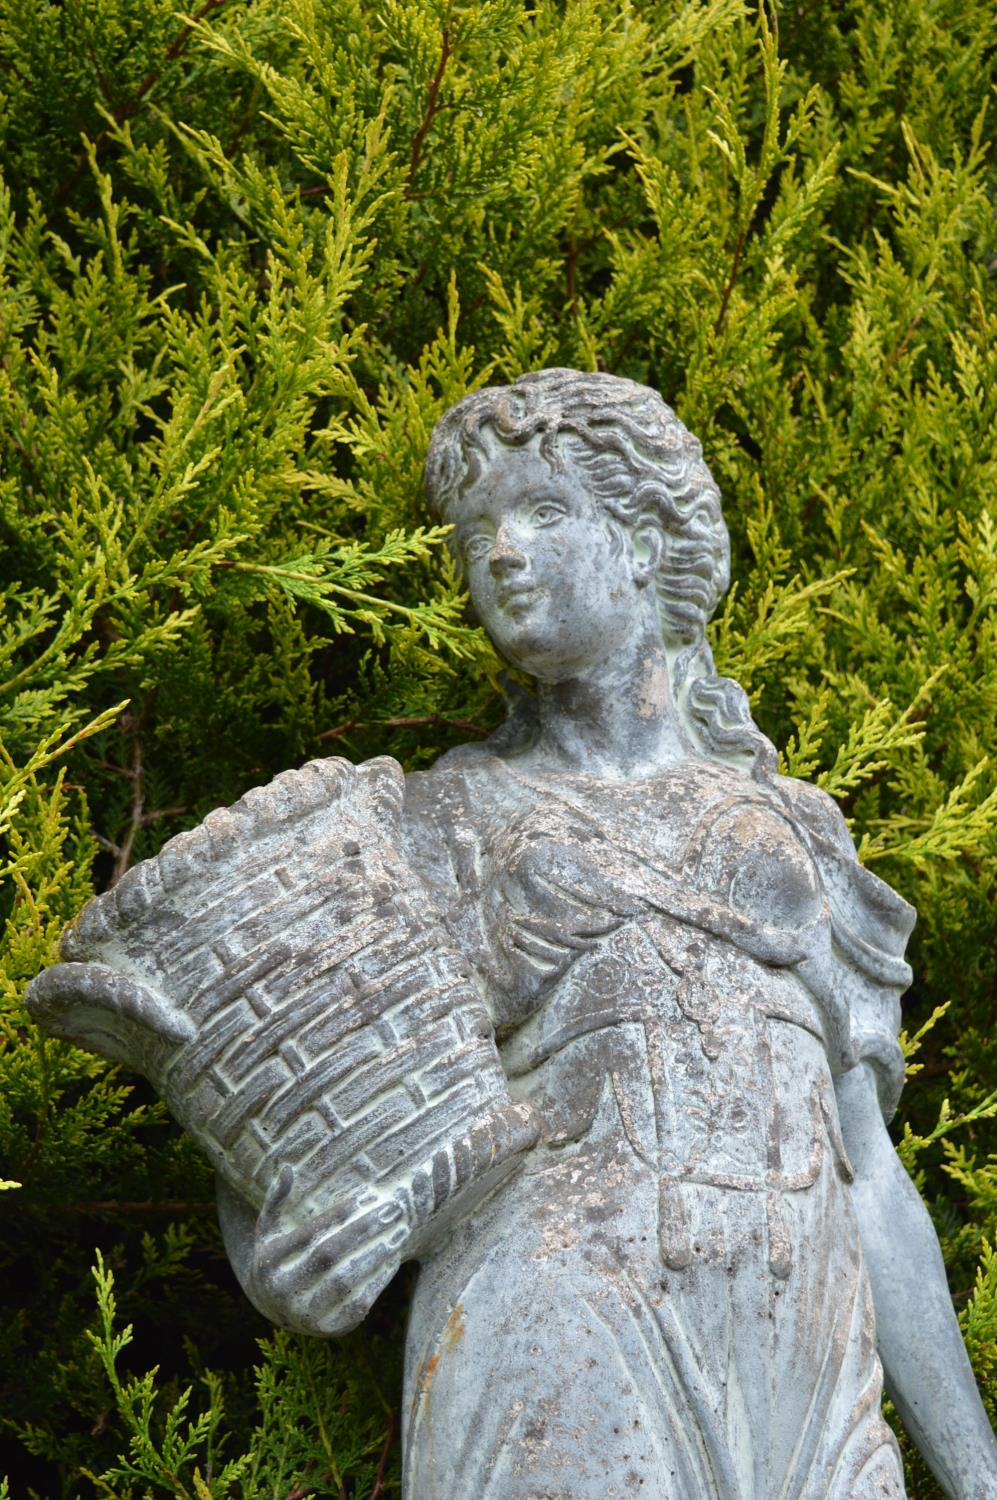 Stone life-size figure of a young girl with a basket of flowers 40W 140H - Image 2 of 3